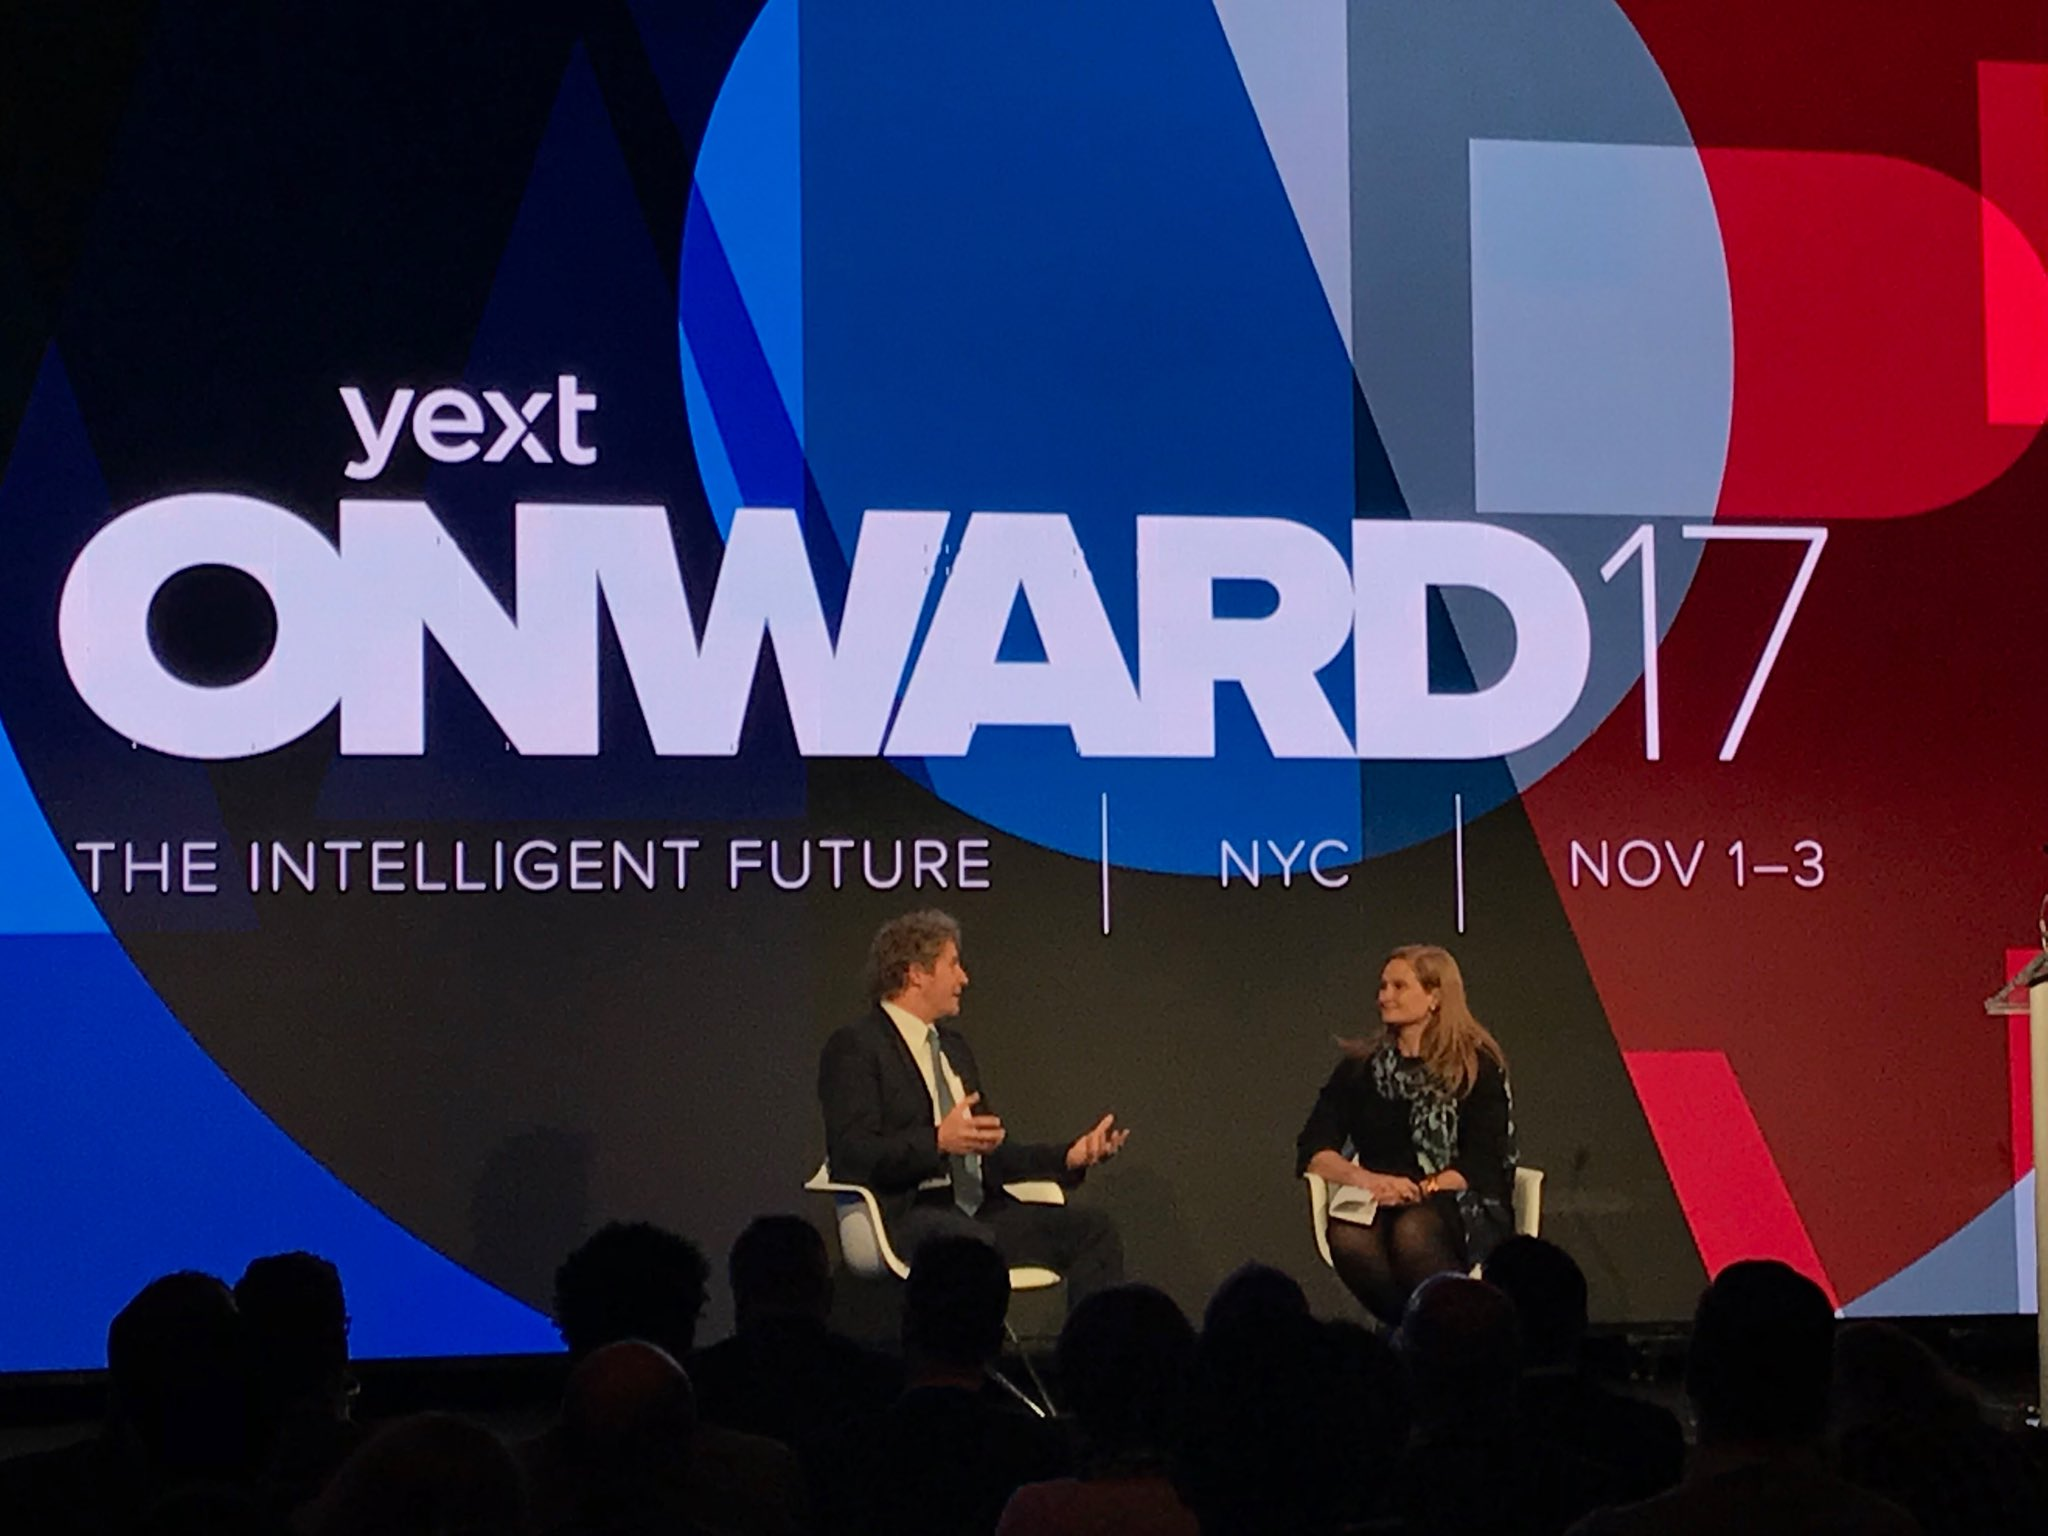 A packed fireside w/ @USPS Chris Karpenko & our fearless leader Kasha Cacy! @yext #ONWARD17 #client https://t.co/J1MU9a6uc9